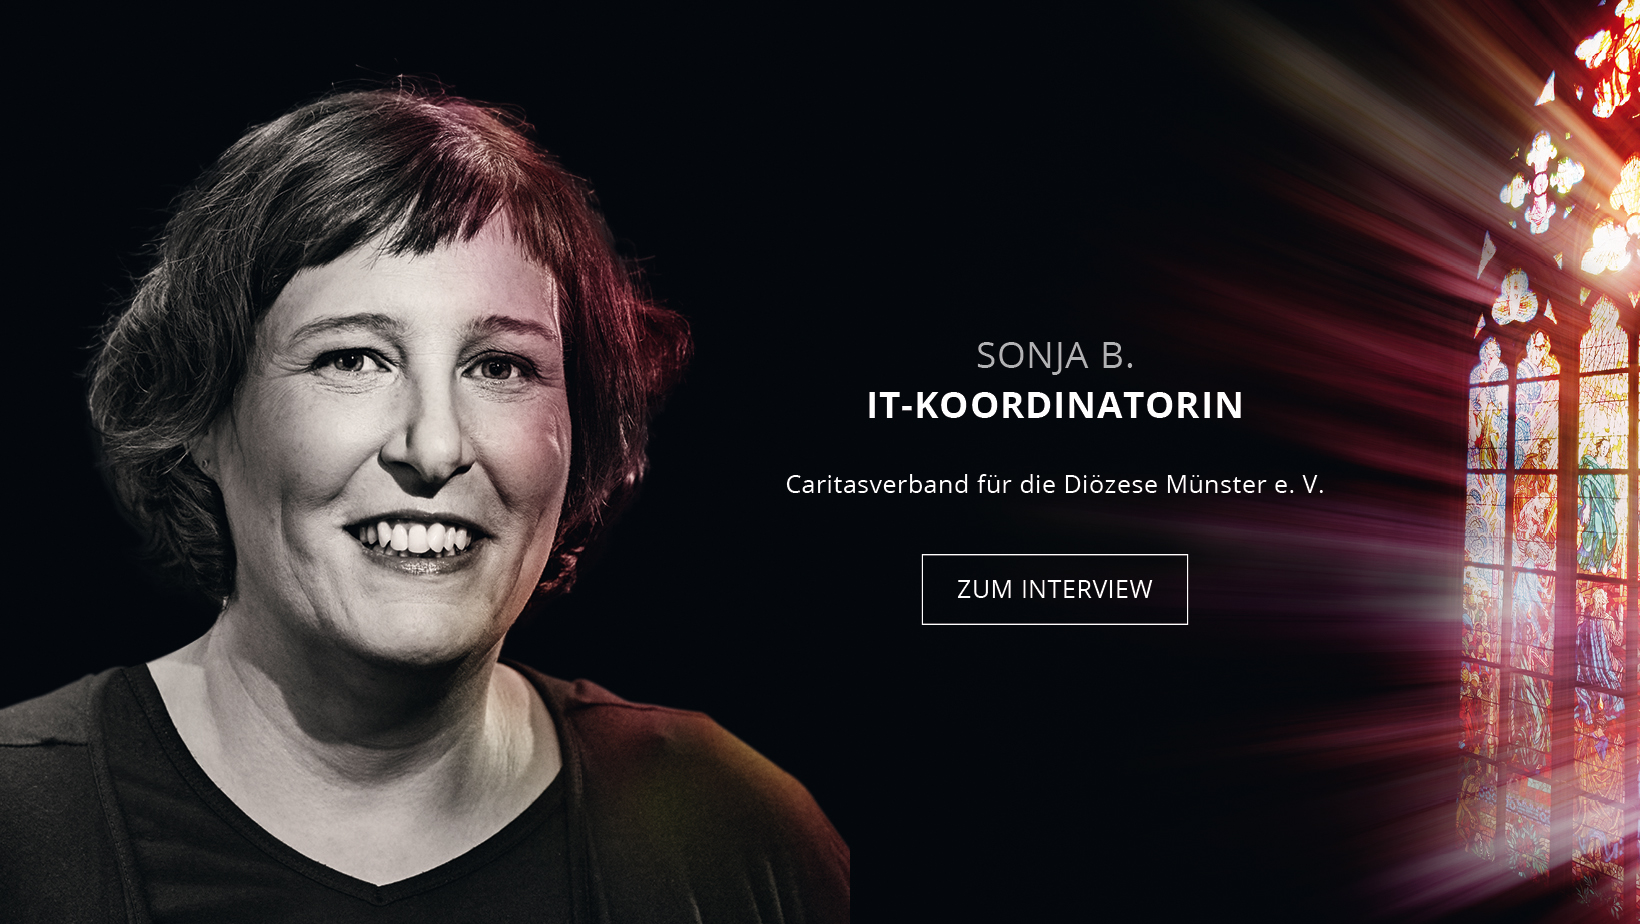 IT-Koordinatorin Sonja Buschkötter